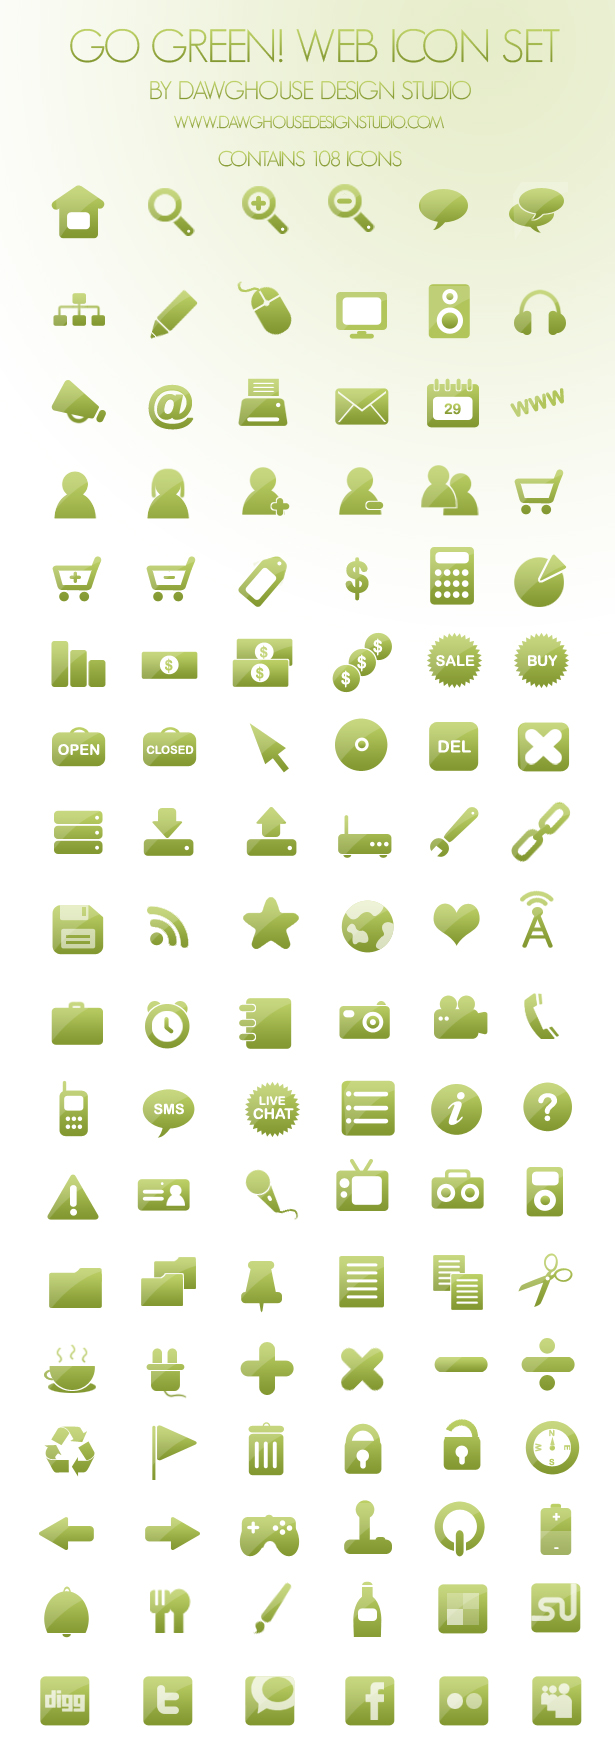 The Go Green! Web Icon Set